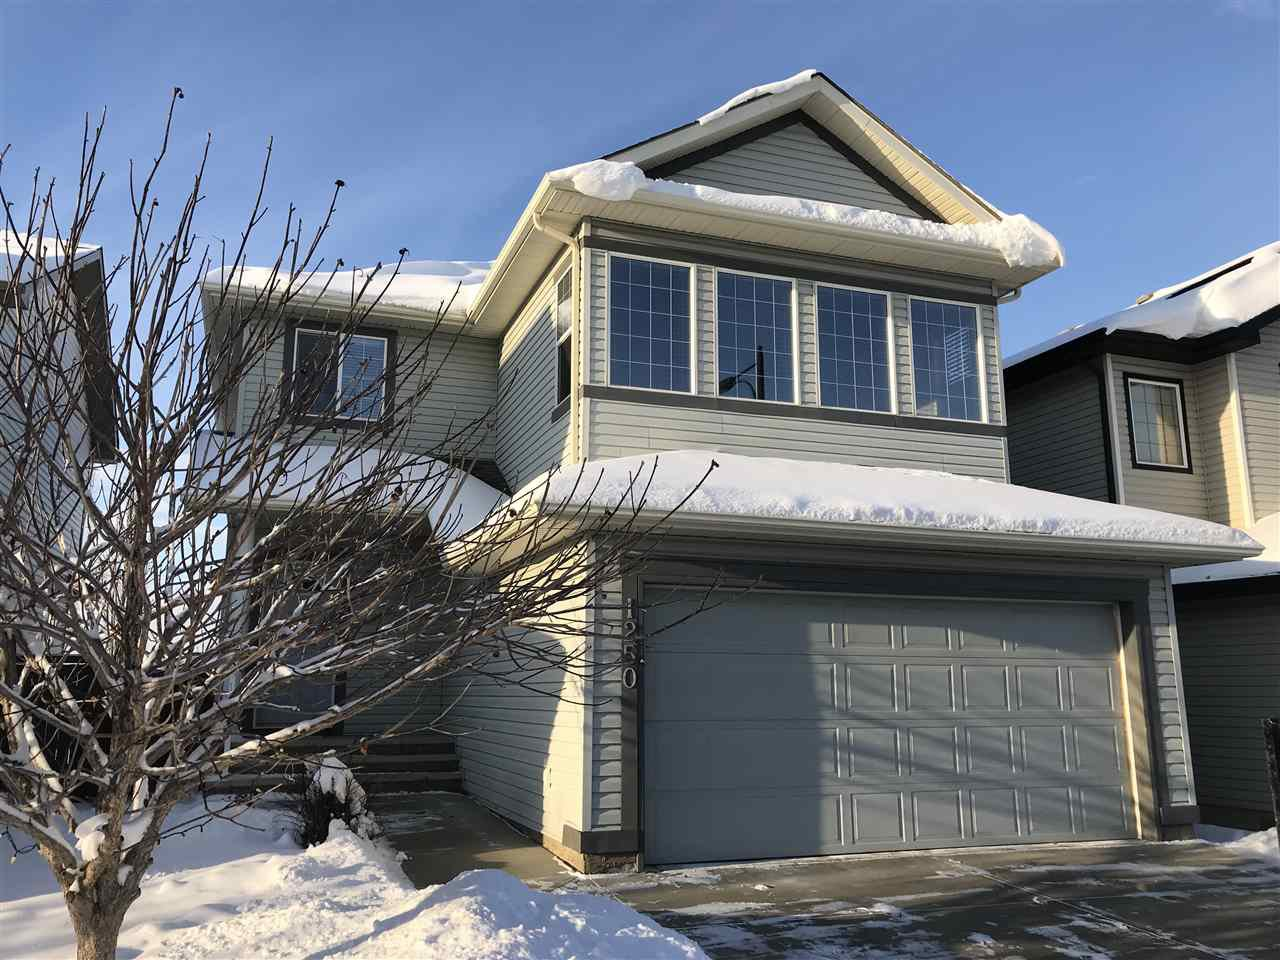 Main Photo: 1250 MCALLISTER Way in Edmonton: Zone 55 House for sale : MLS®# E4221316